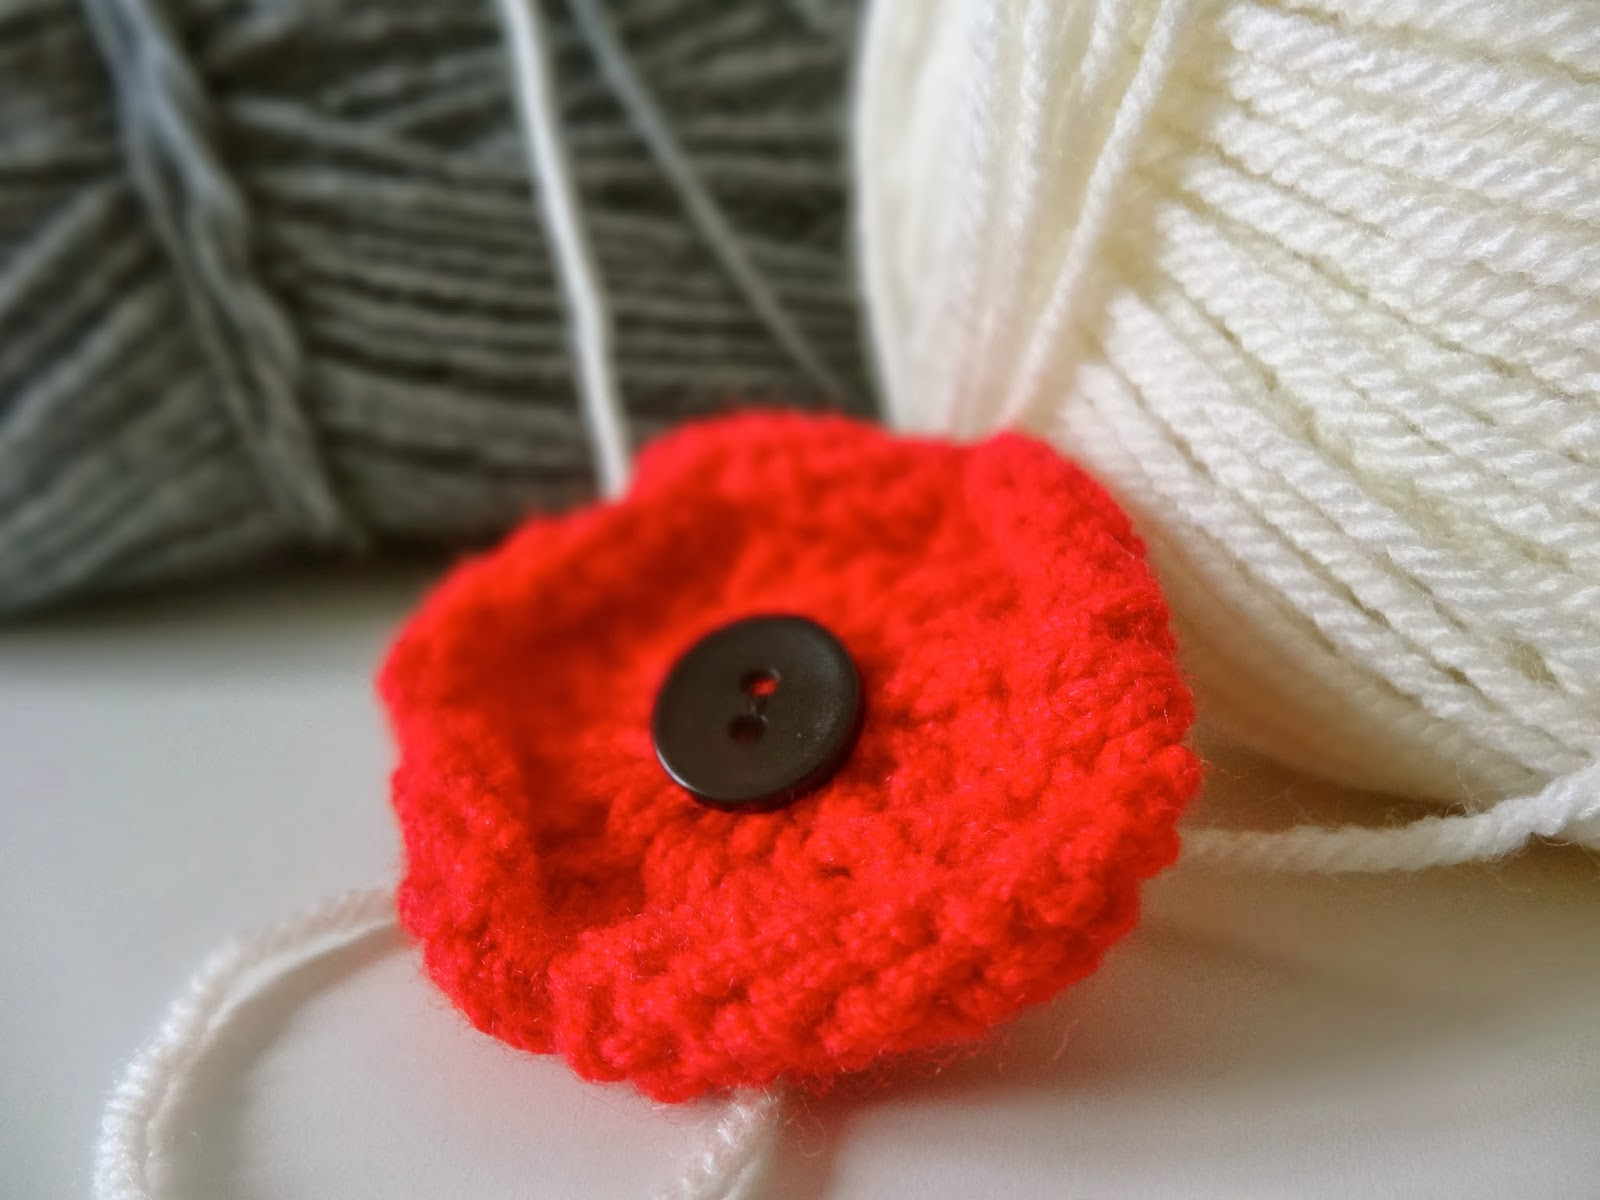 Trends With Benefits: DIY Knitted Poppy